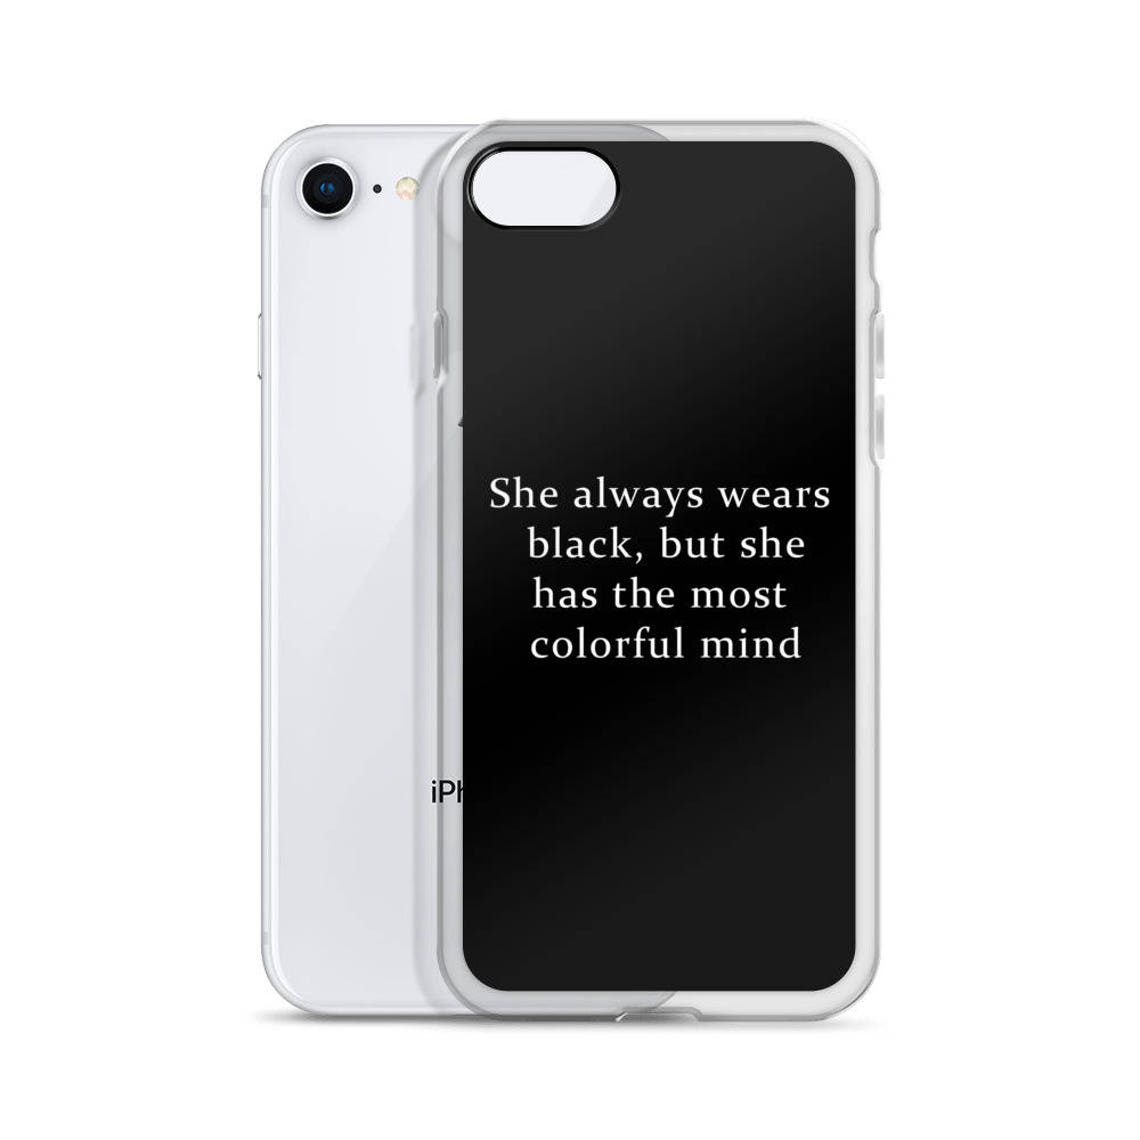 She Wears Black Iphone Cases Tumblr Hipster Grunge Aesthetic Etsy